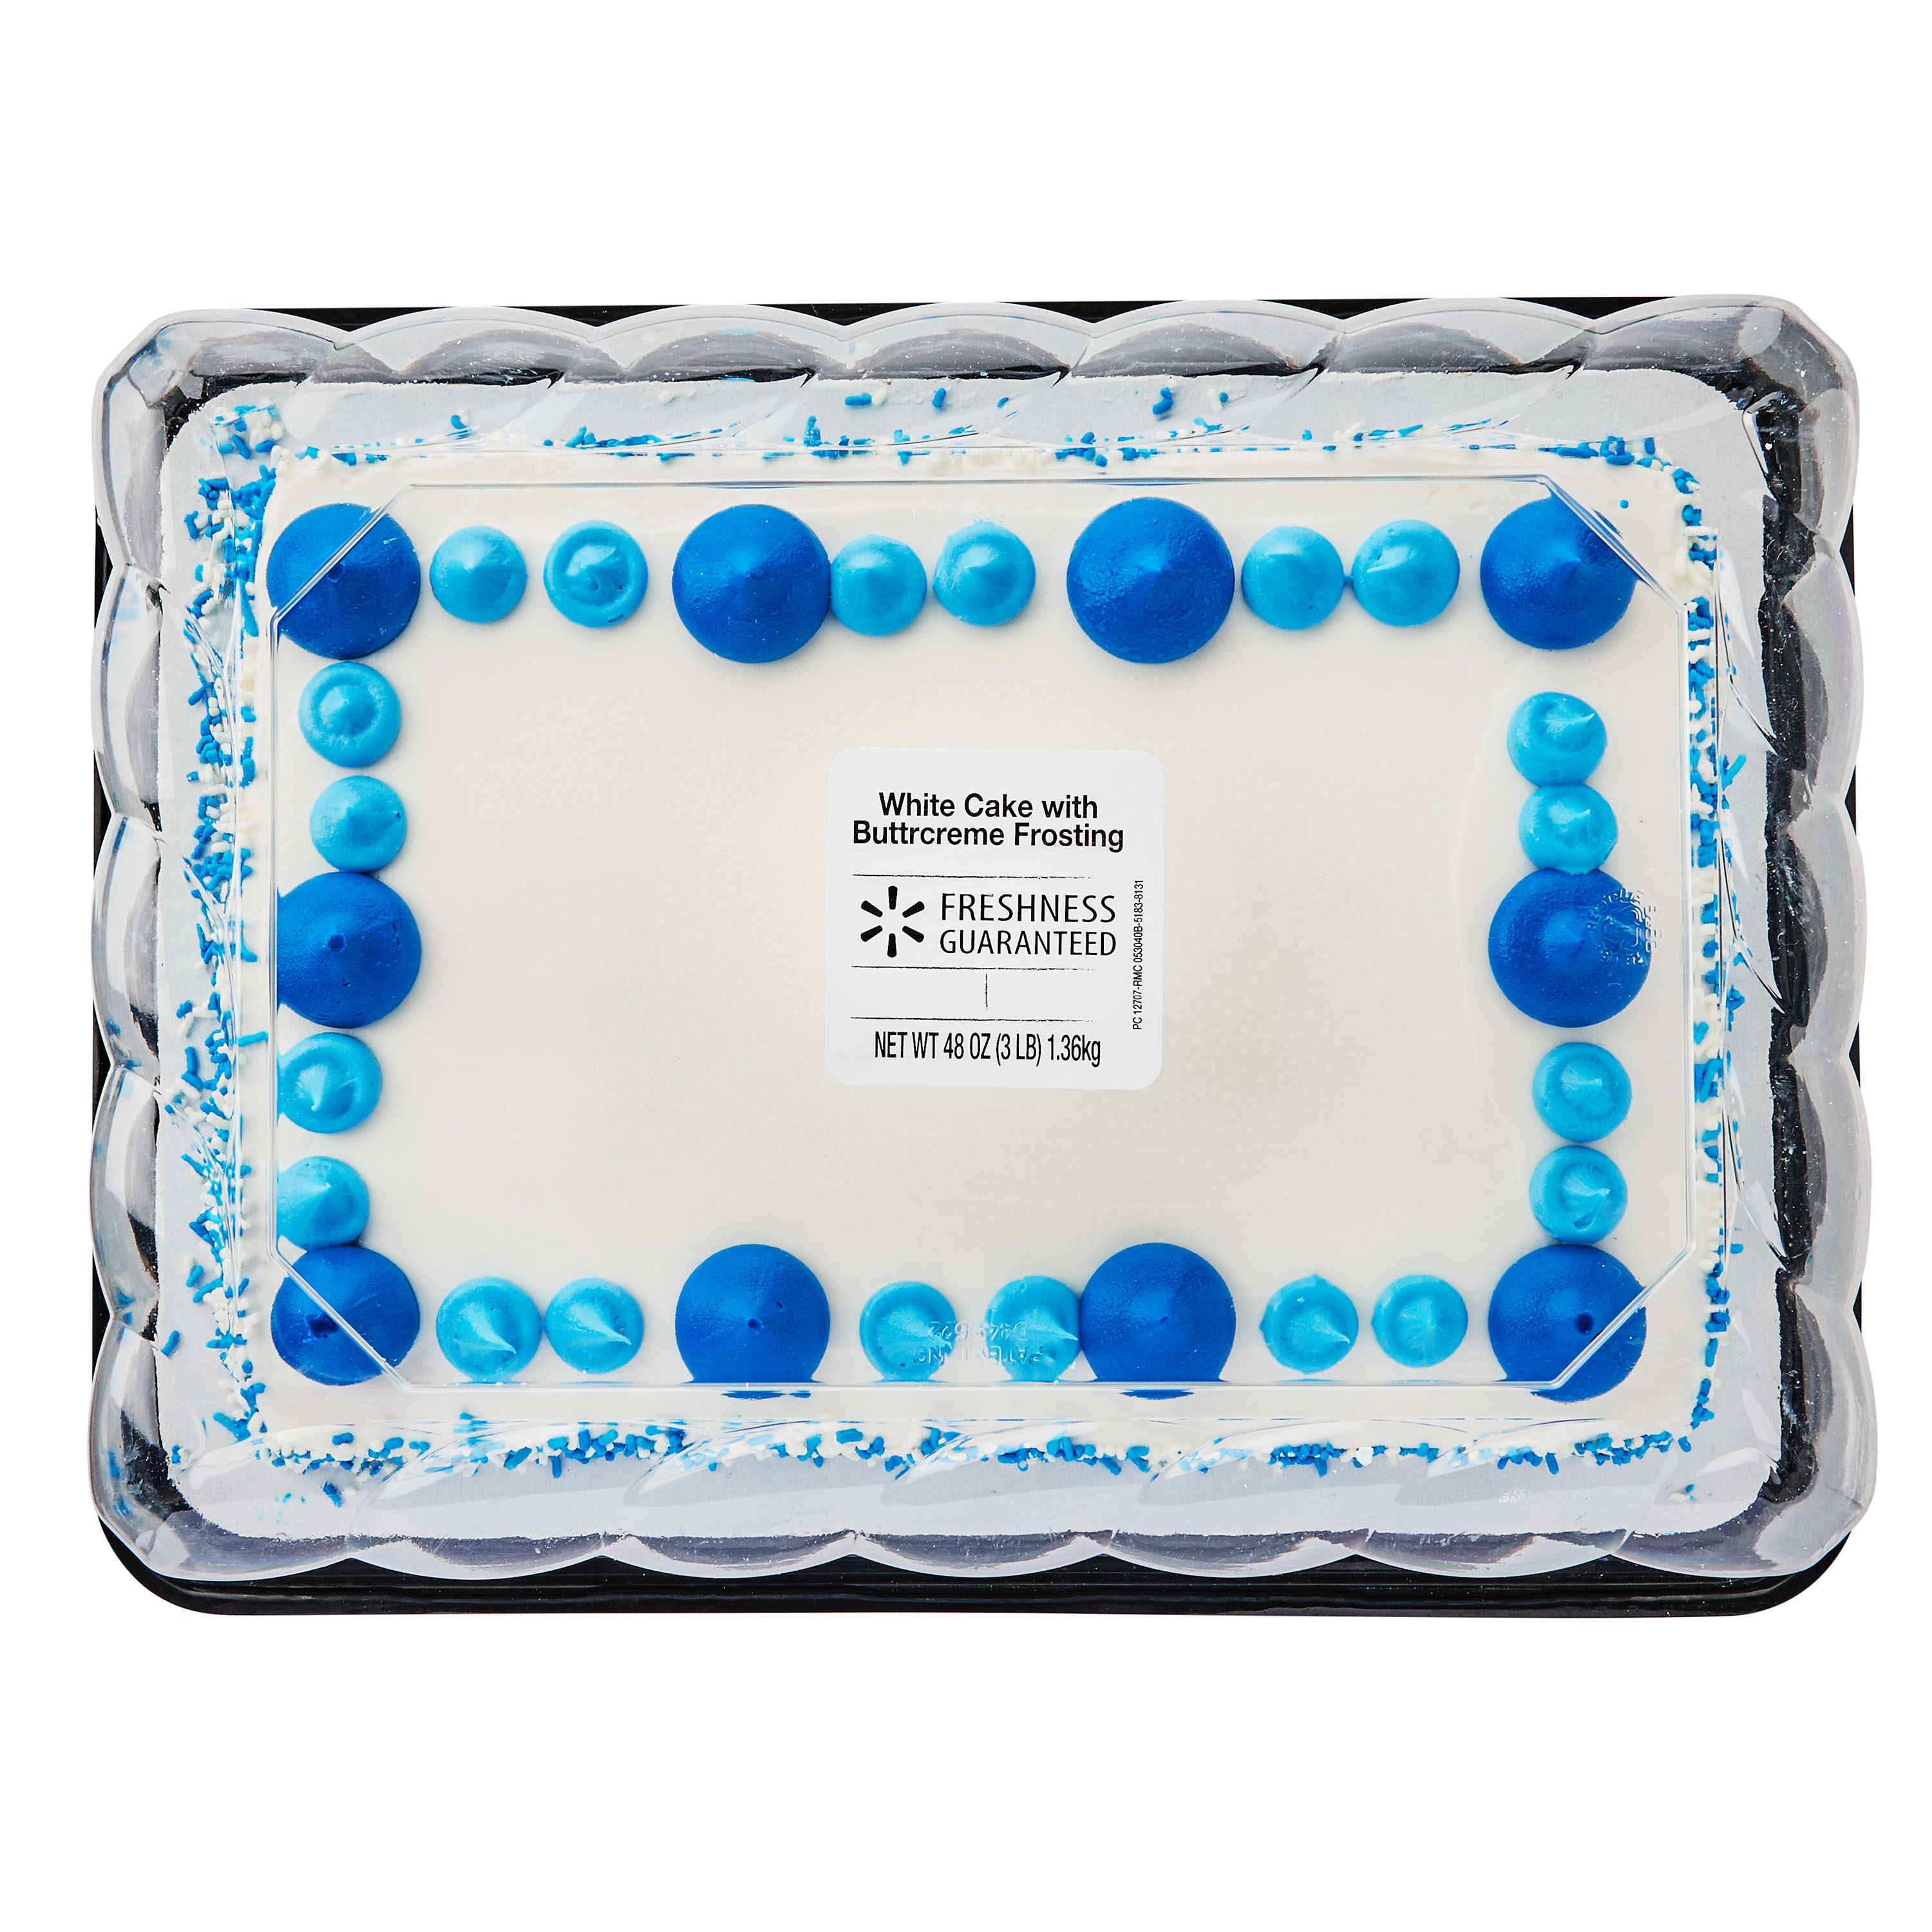 Stupendous Freshness Guaranteed White Cake With Buttrcreme Frosting 1 4 Funny Birthday Cards Online Overcheapnameinfo